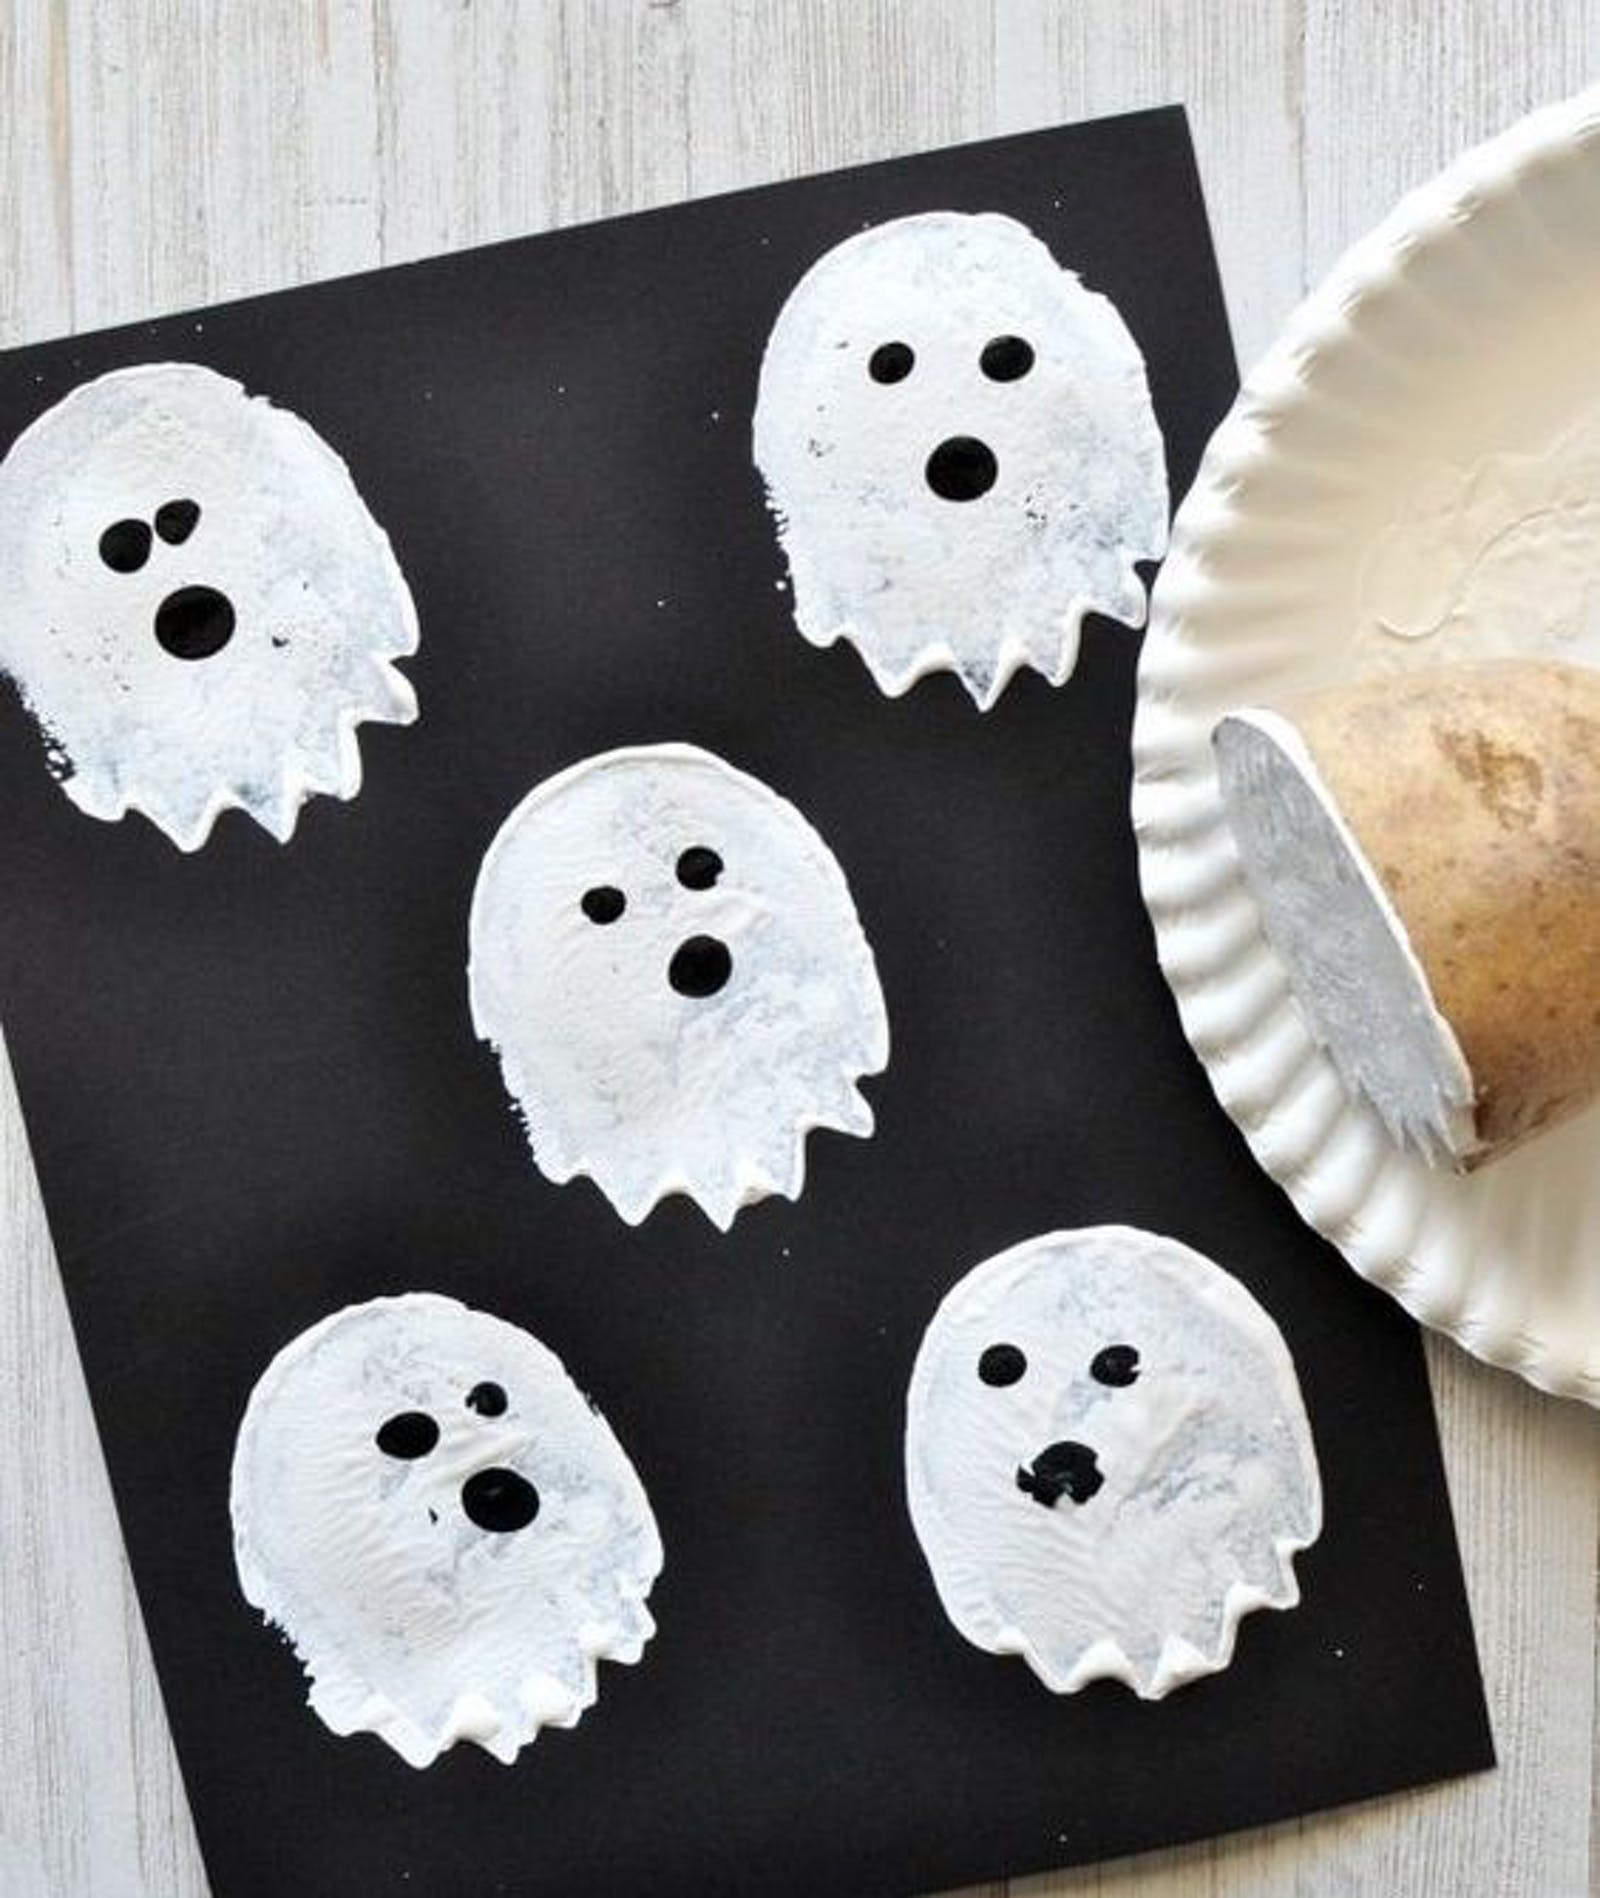 Potato stamps in ghost print